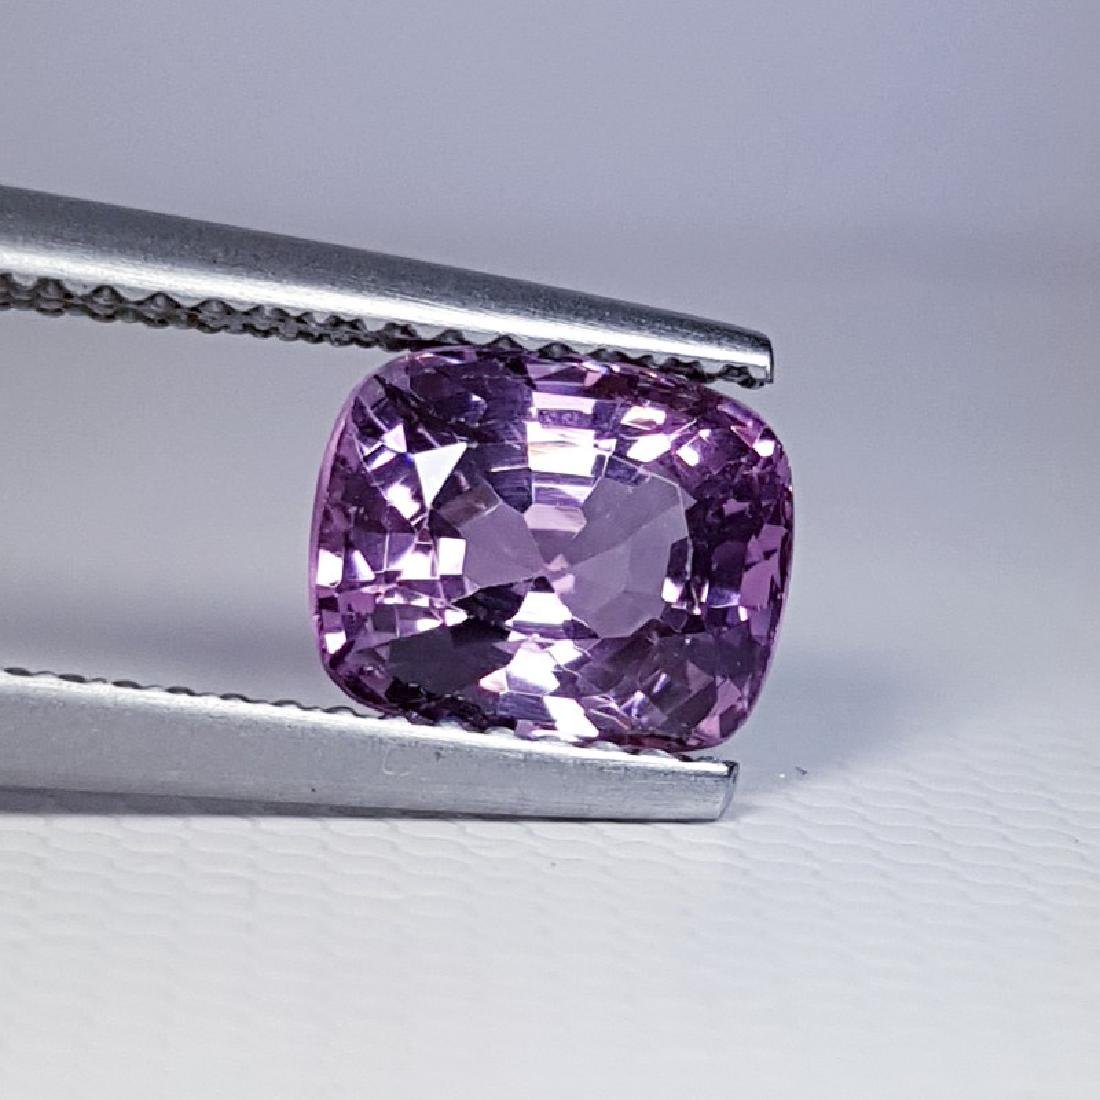 2.10 ct Collective Gem Cushion Cut Natural Spinel